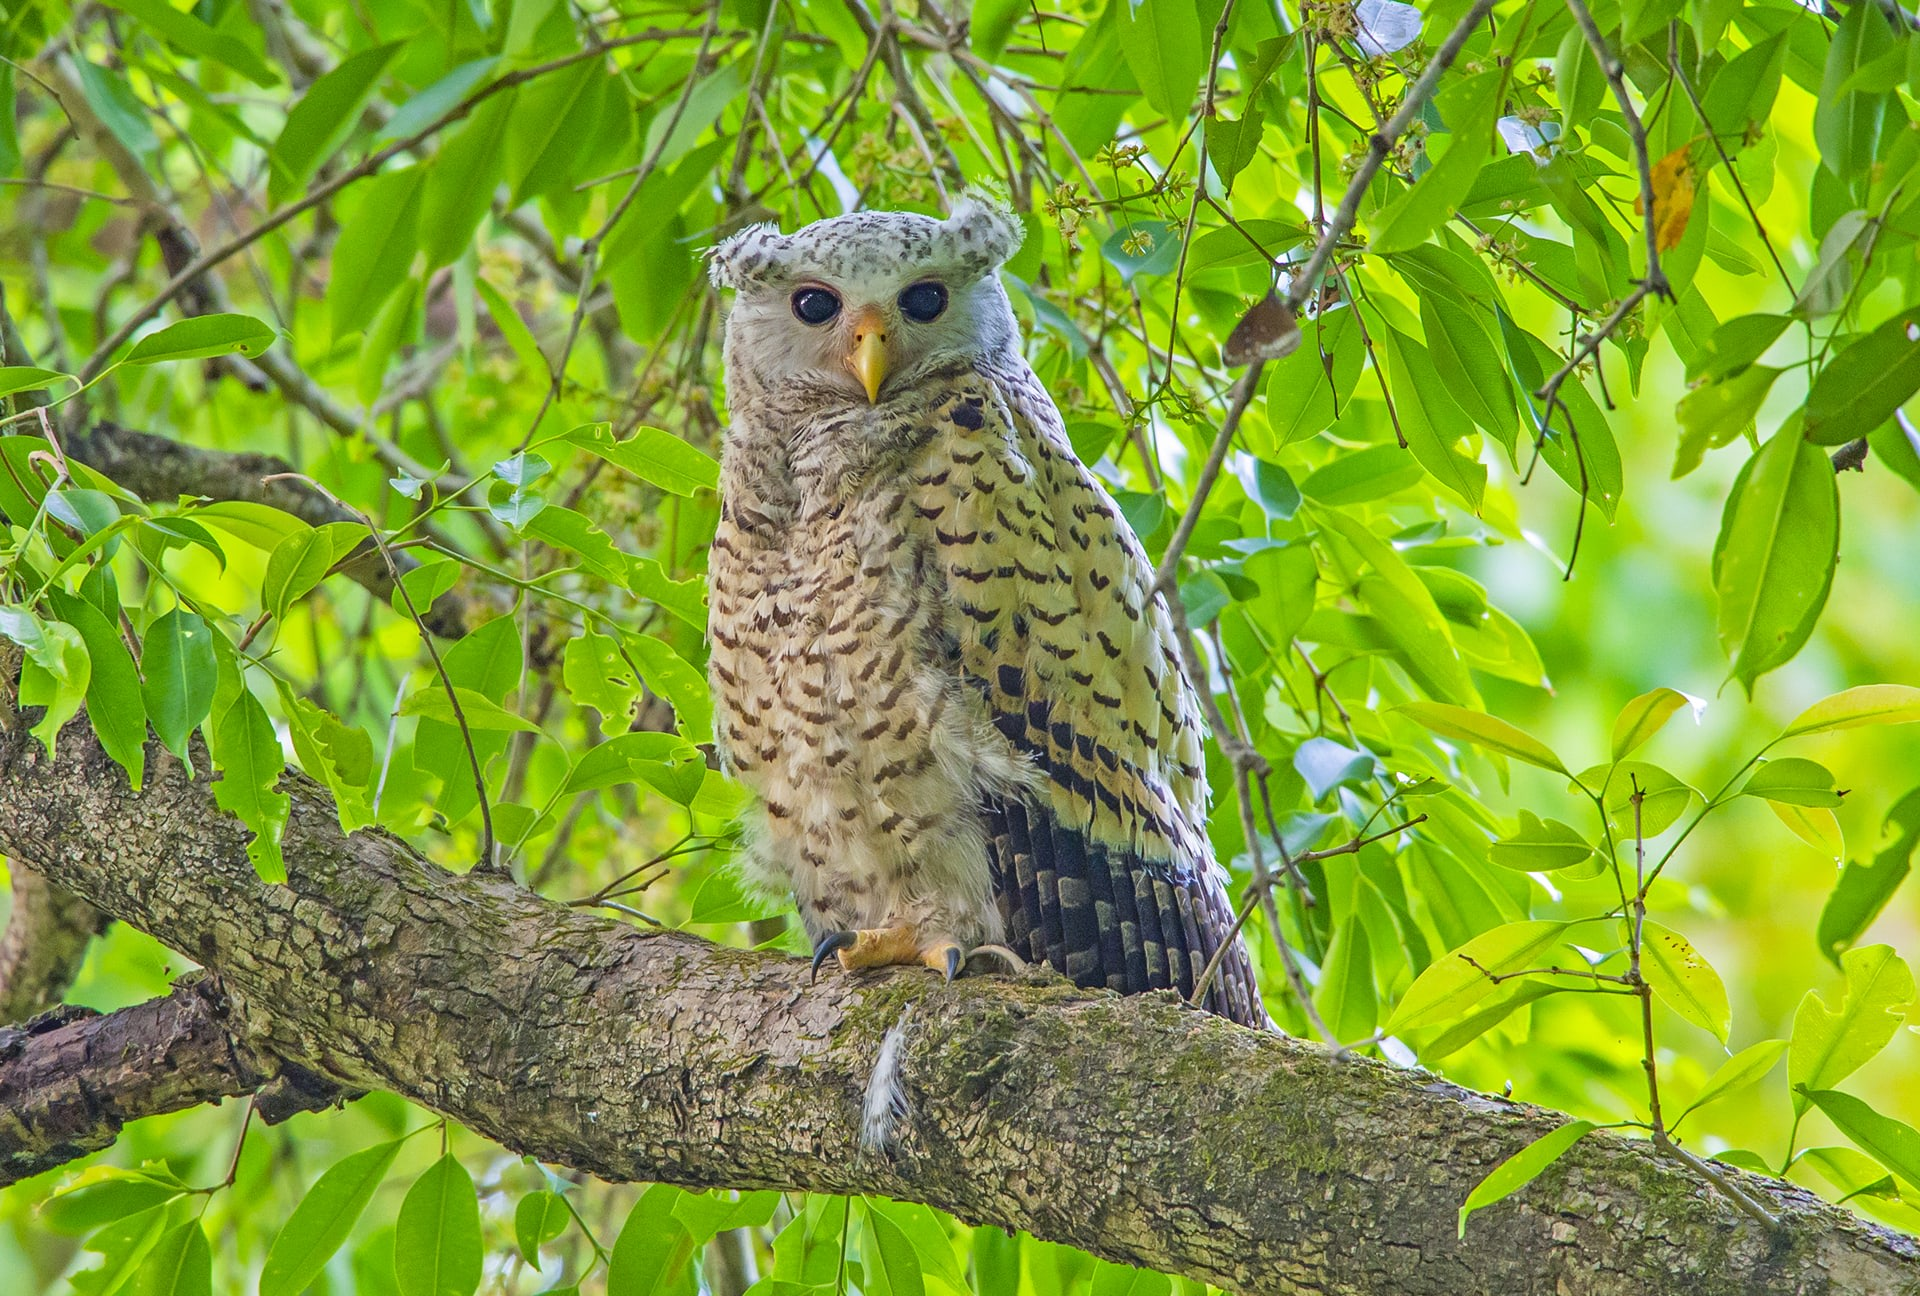 """Most owls are very vocal, and once you know their call, identifying them is fairly easy. Jim Corbett described the call of the spot-bellied eagle-owl (Bubo nipalensis) as the """"call of a banshee"""" for the eerie shriek it emits, inspiring tall tales in local folklore. In the silence of the night, their calls pierce the forest like an arrow. With heart-shaped spots on their bodies and prominent yellow beaks, these large owls are handsome birds whether they are juveniles (above) or adults."""